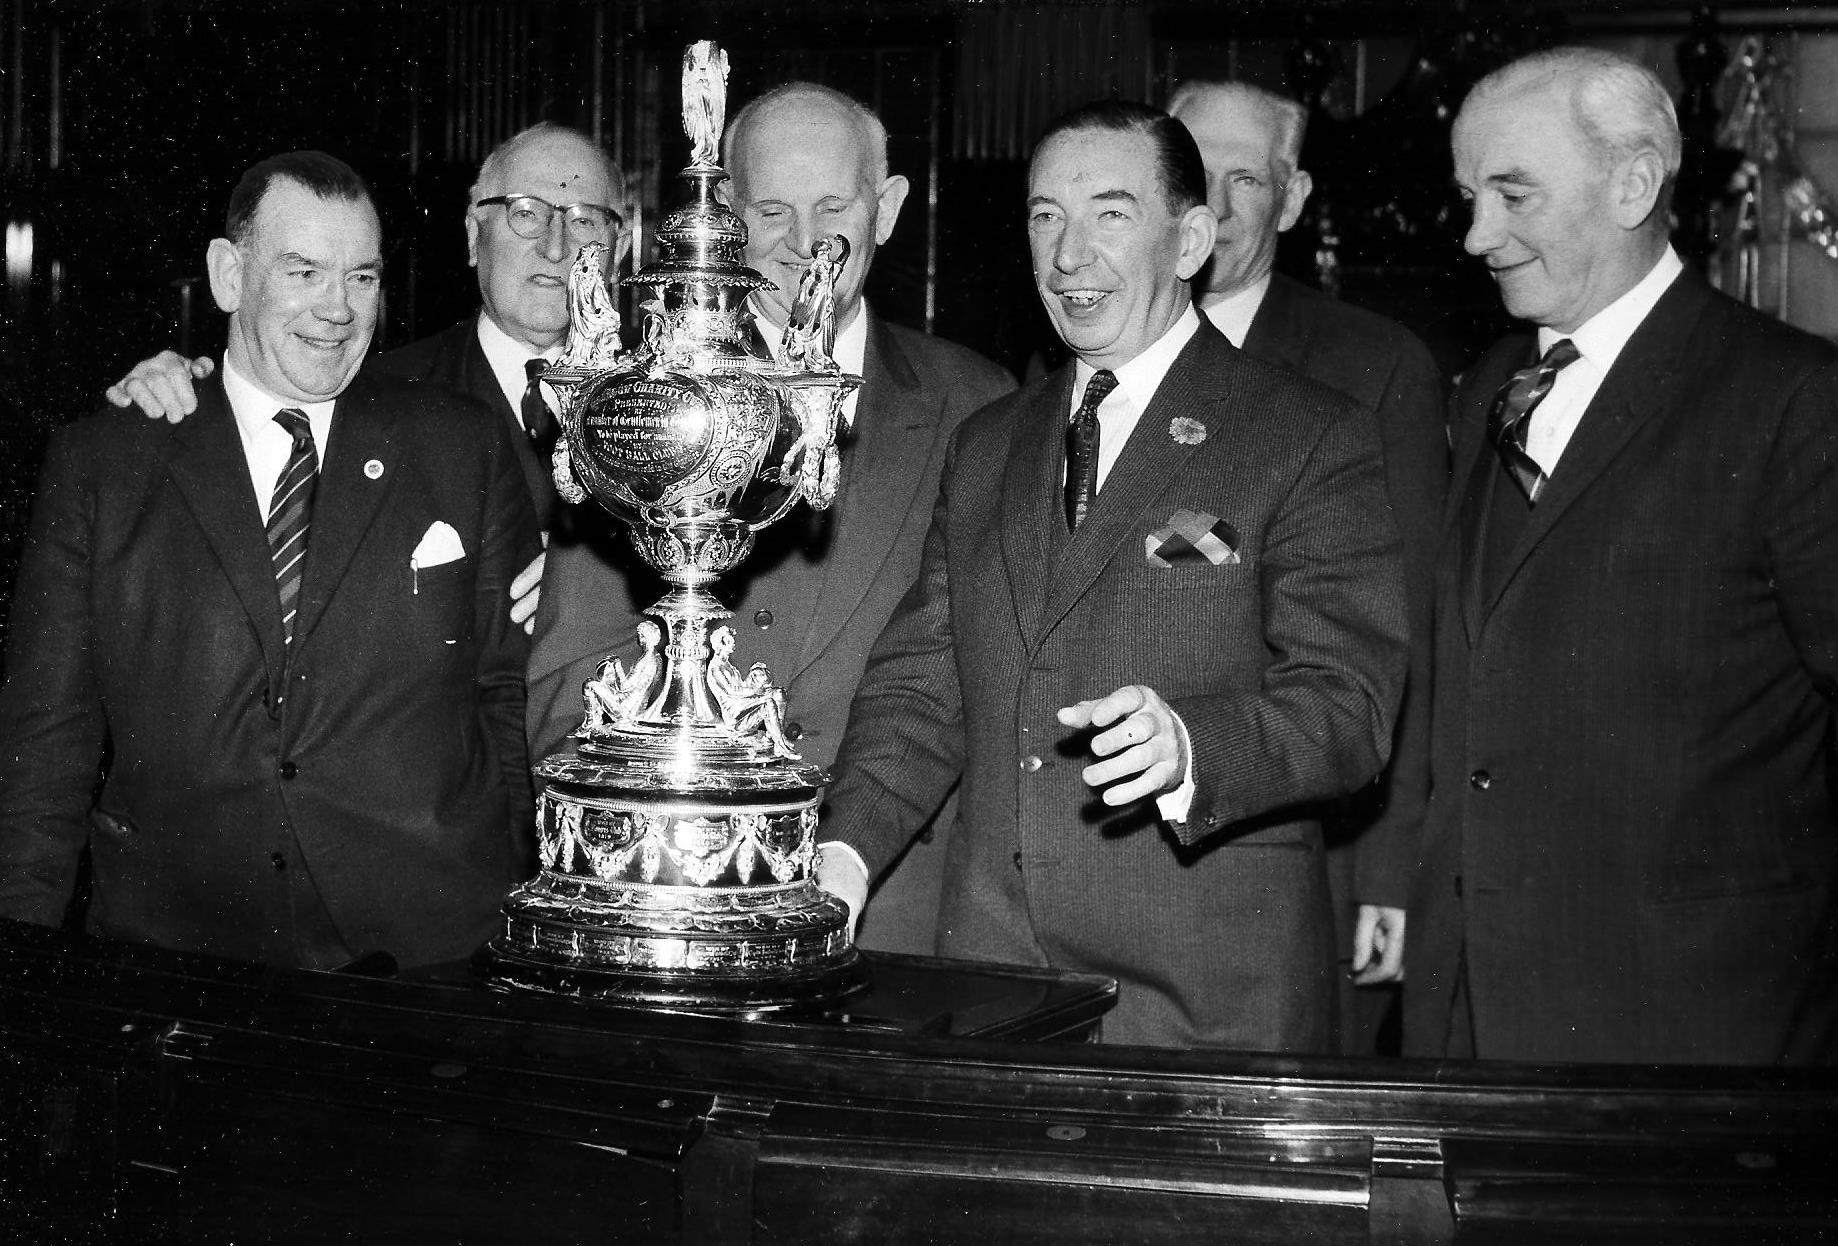 Times Past: The Glasgow Charity Cup on show in 1963